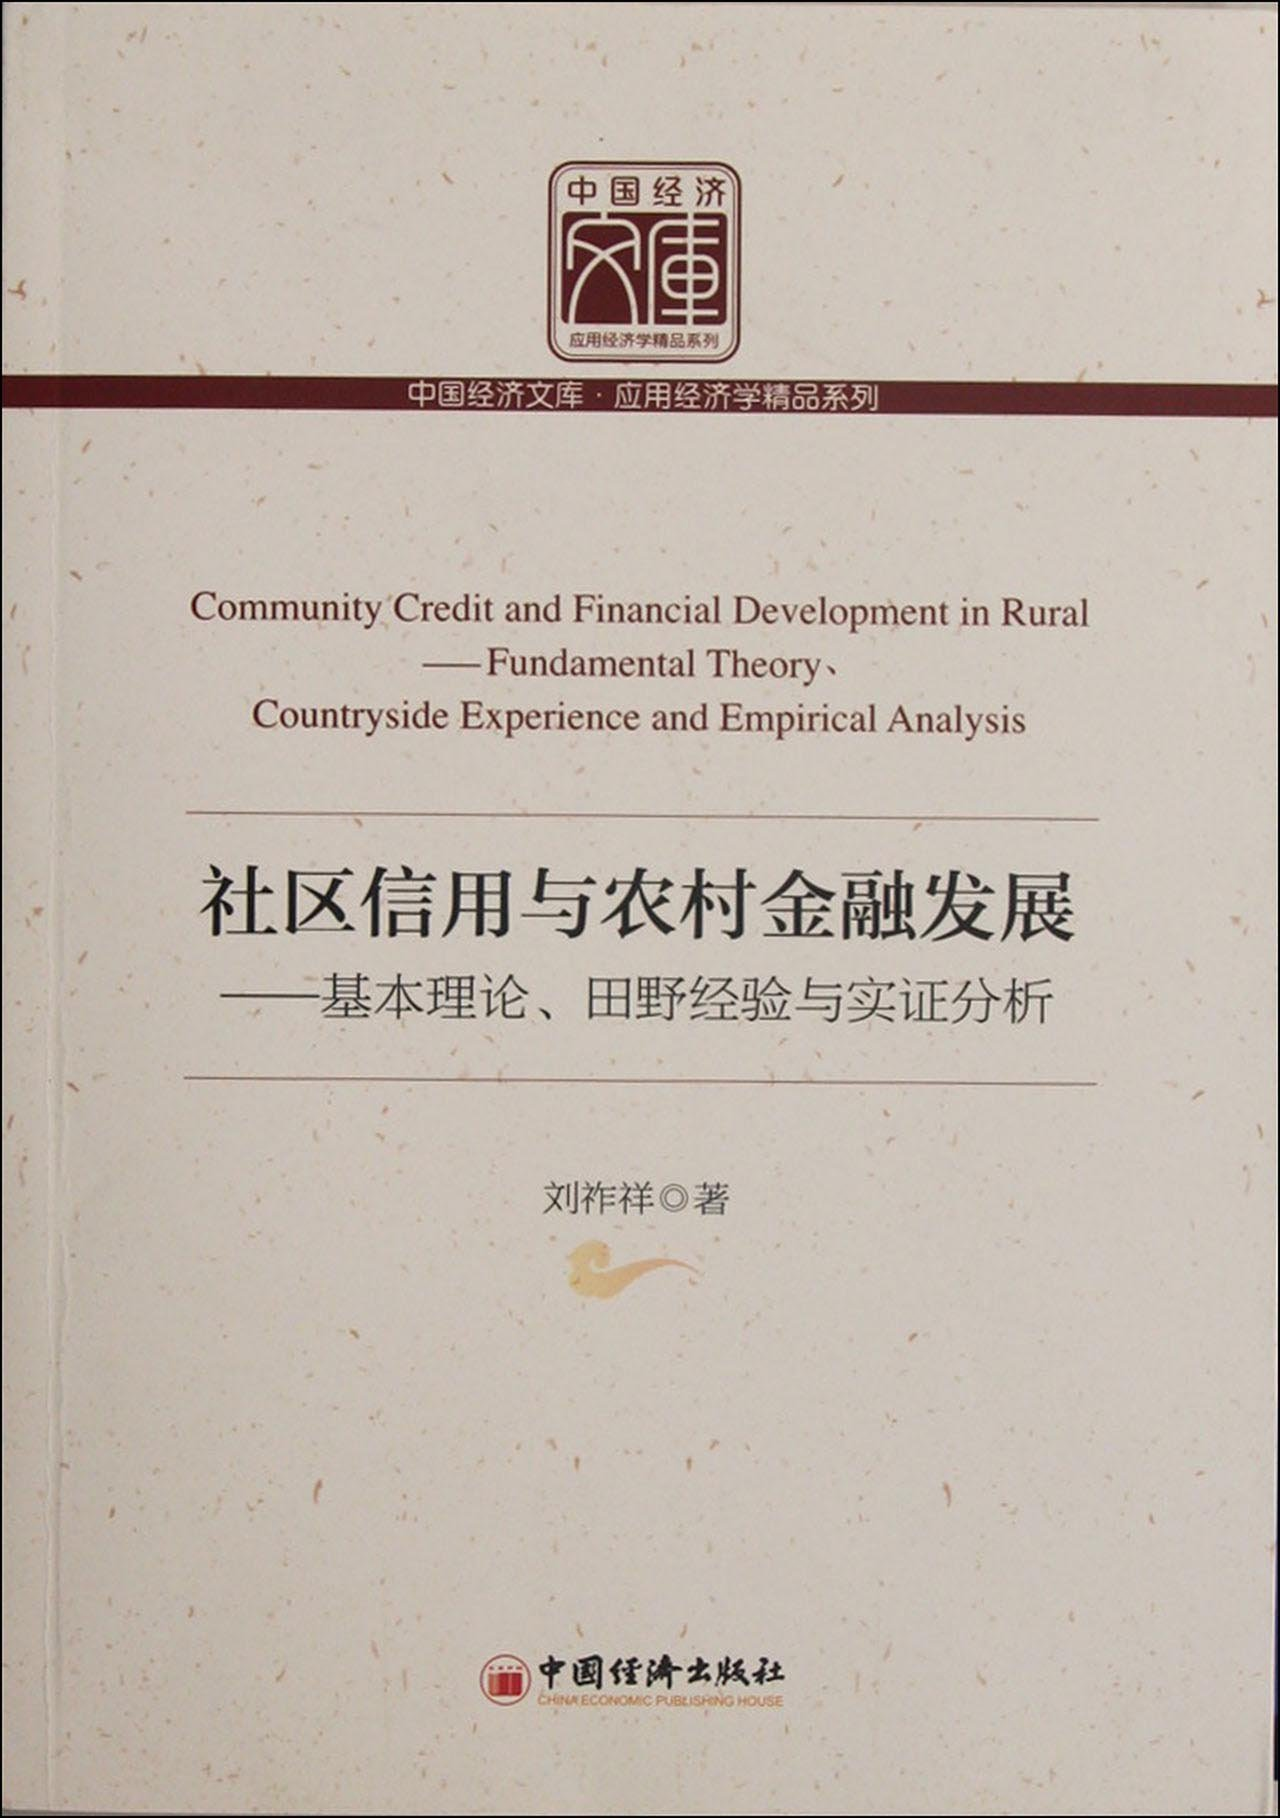 Download Community Credit and Rural Financial Development-Basic Theory, Agrifield Experience and Empirical Analysis (Chinese Edition) pdf epub